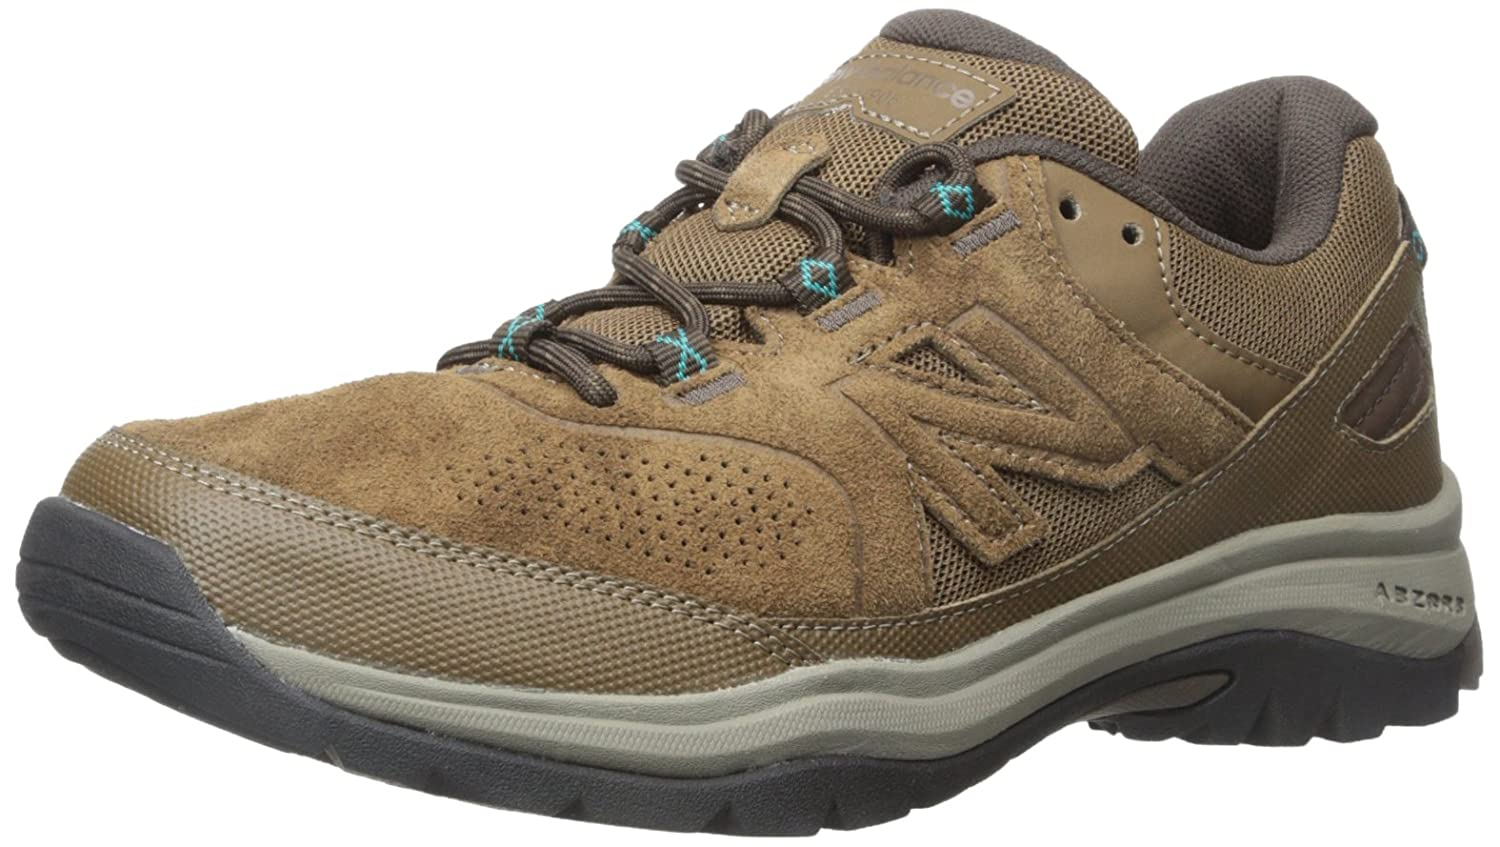 New Balance Women's WW769V1 Walking Shoe B01641CJBG 8 B(M) US|Brown